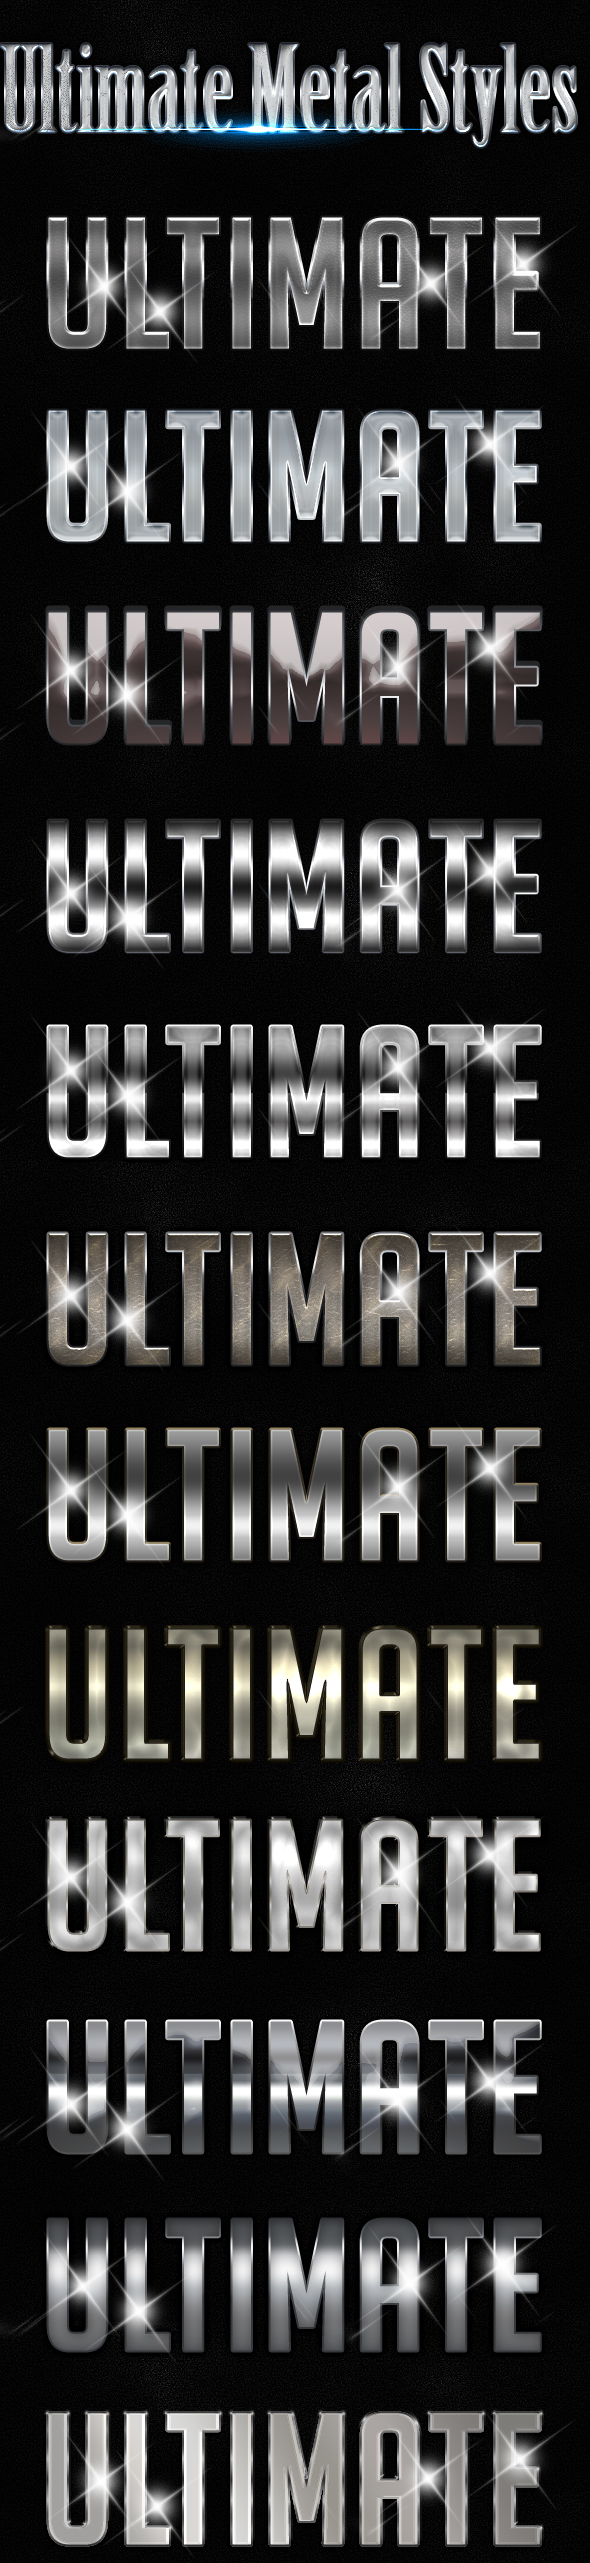 Ultimate Styles - Styles Photoshop